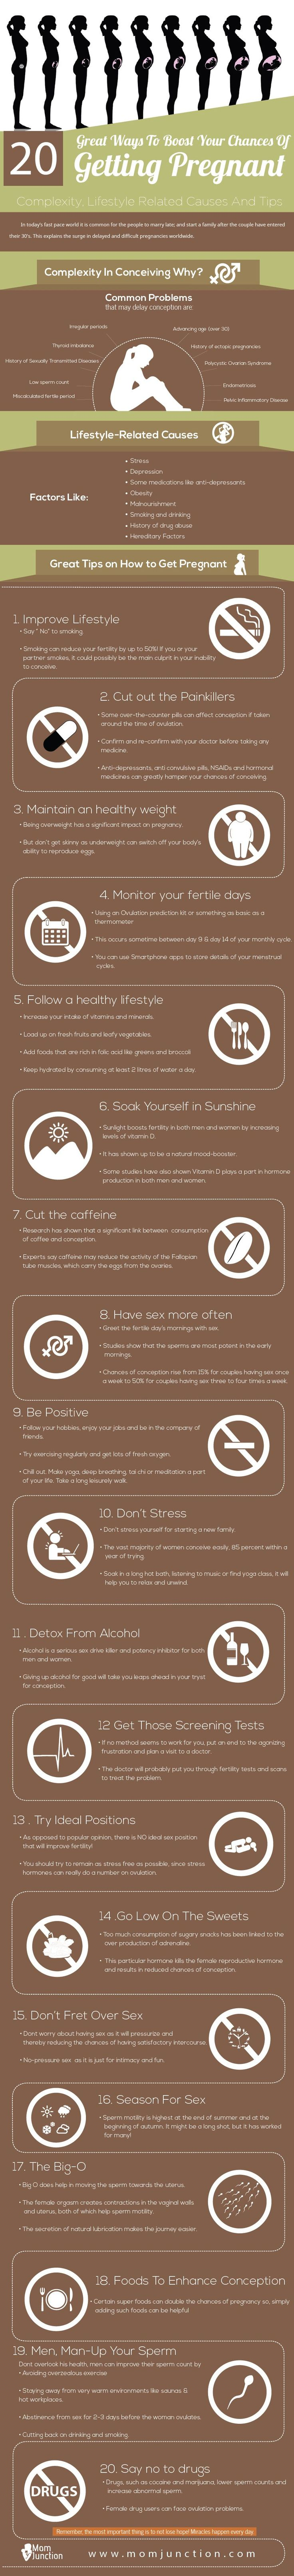 24 best Fertility Issues images on Pinterest